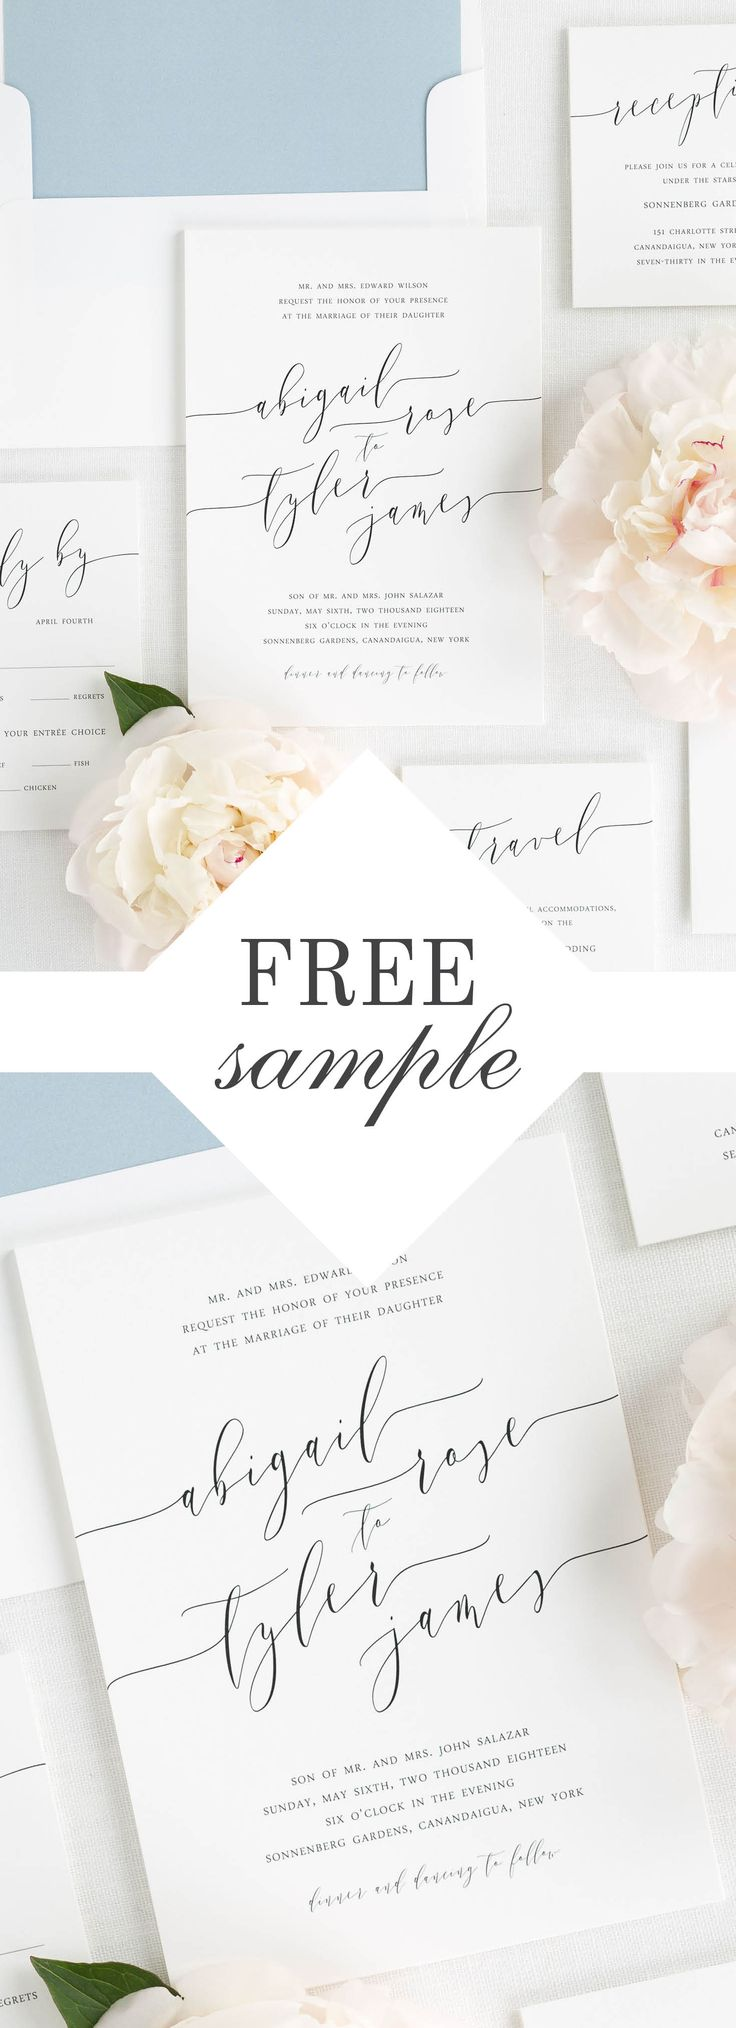 Request your free sample today, and experience our quality in person.